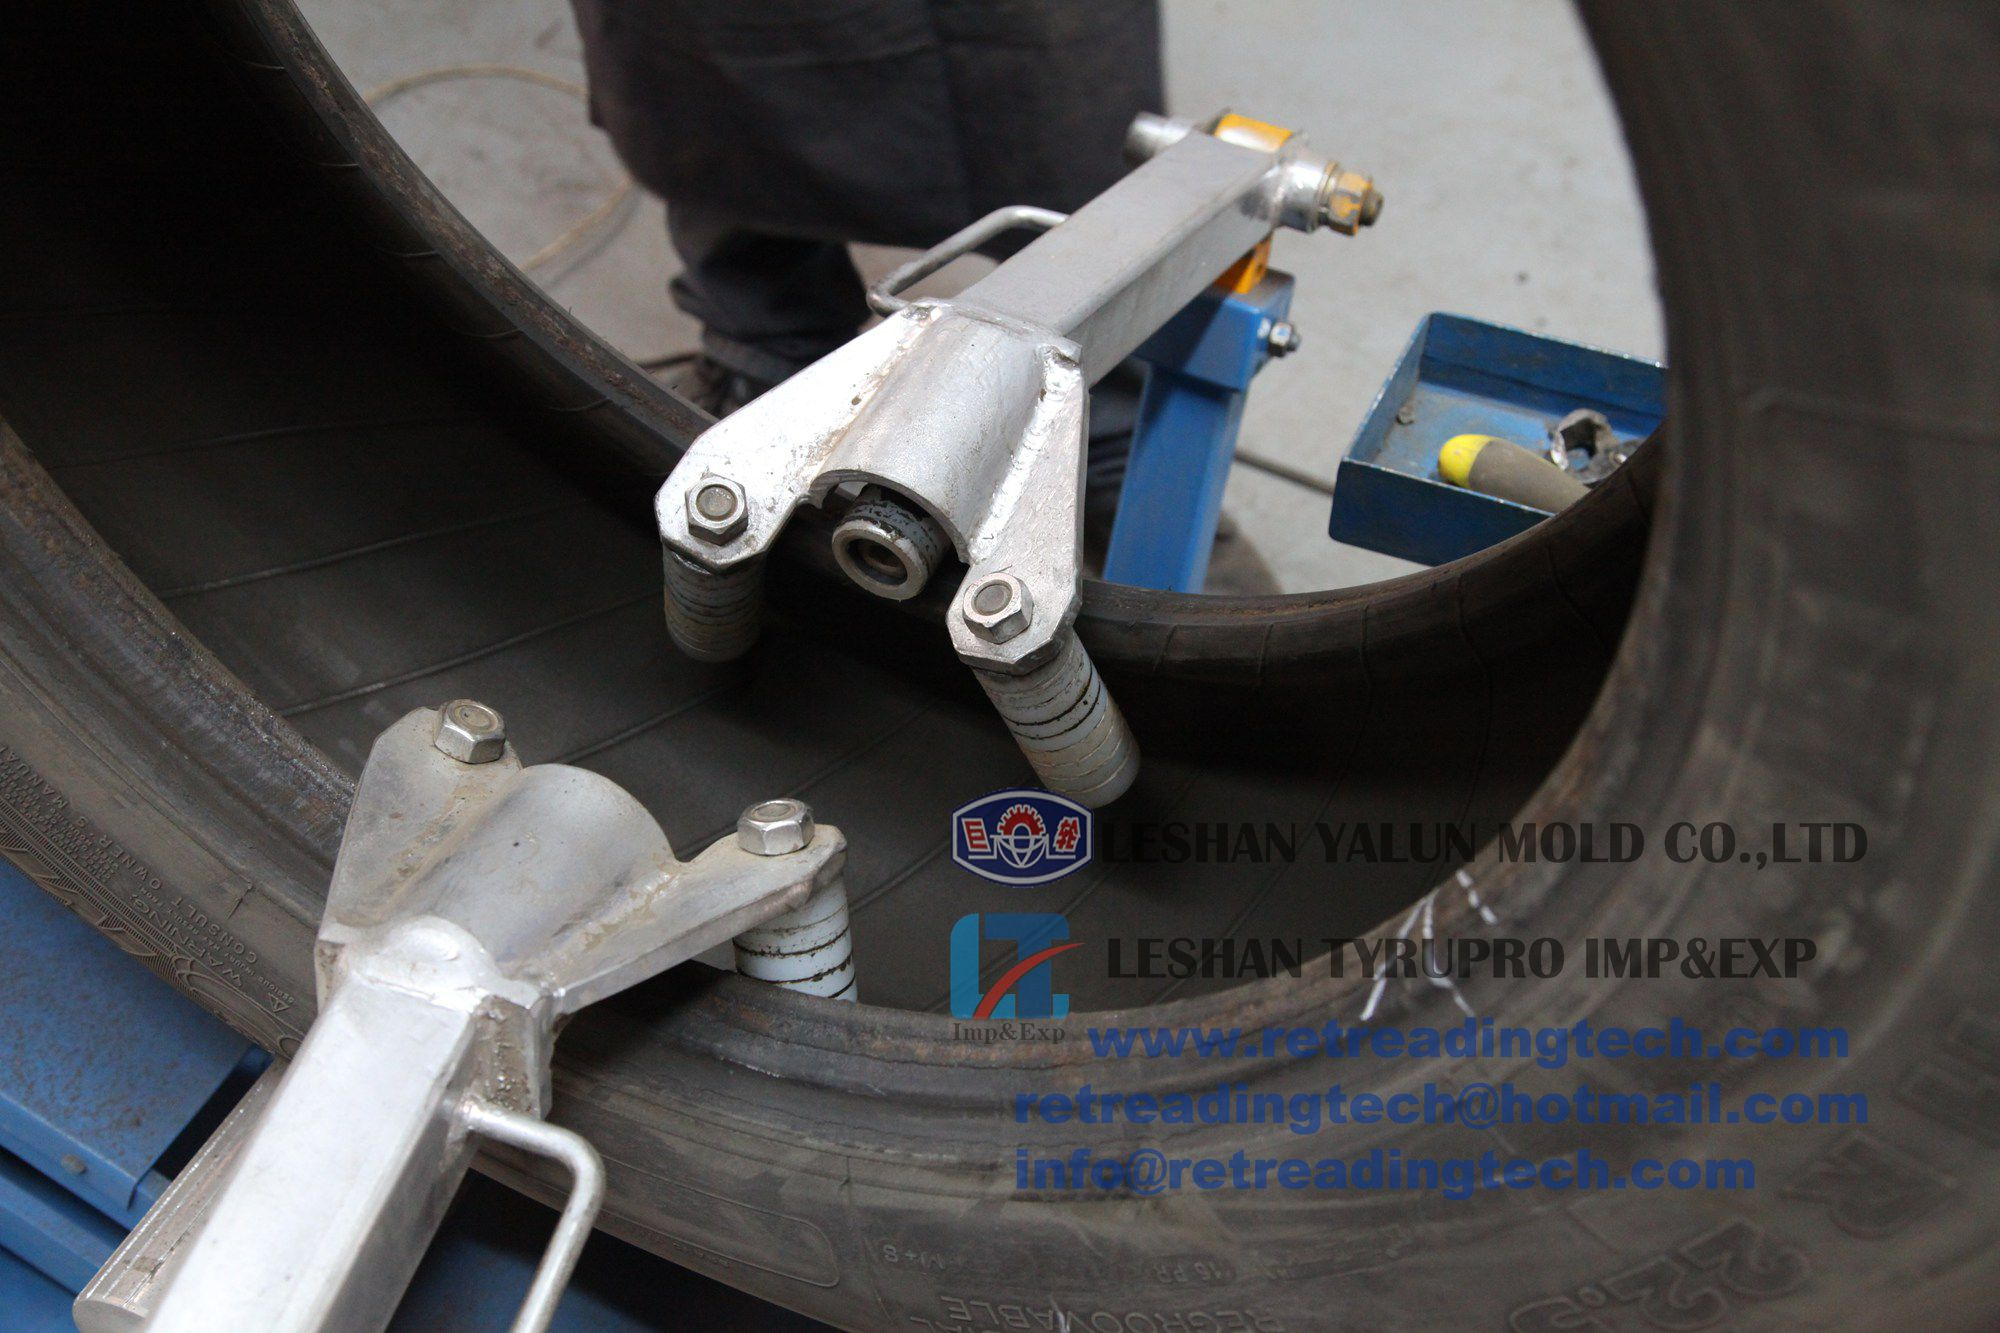 the tire inspection spreader spreads tire casing so the user can easily insptect the tire's condition